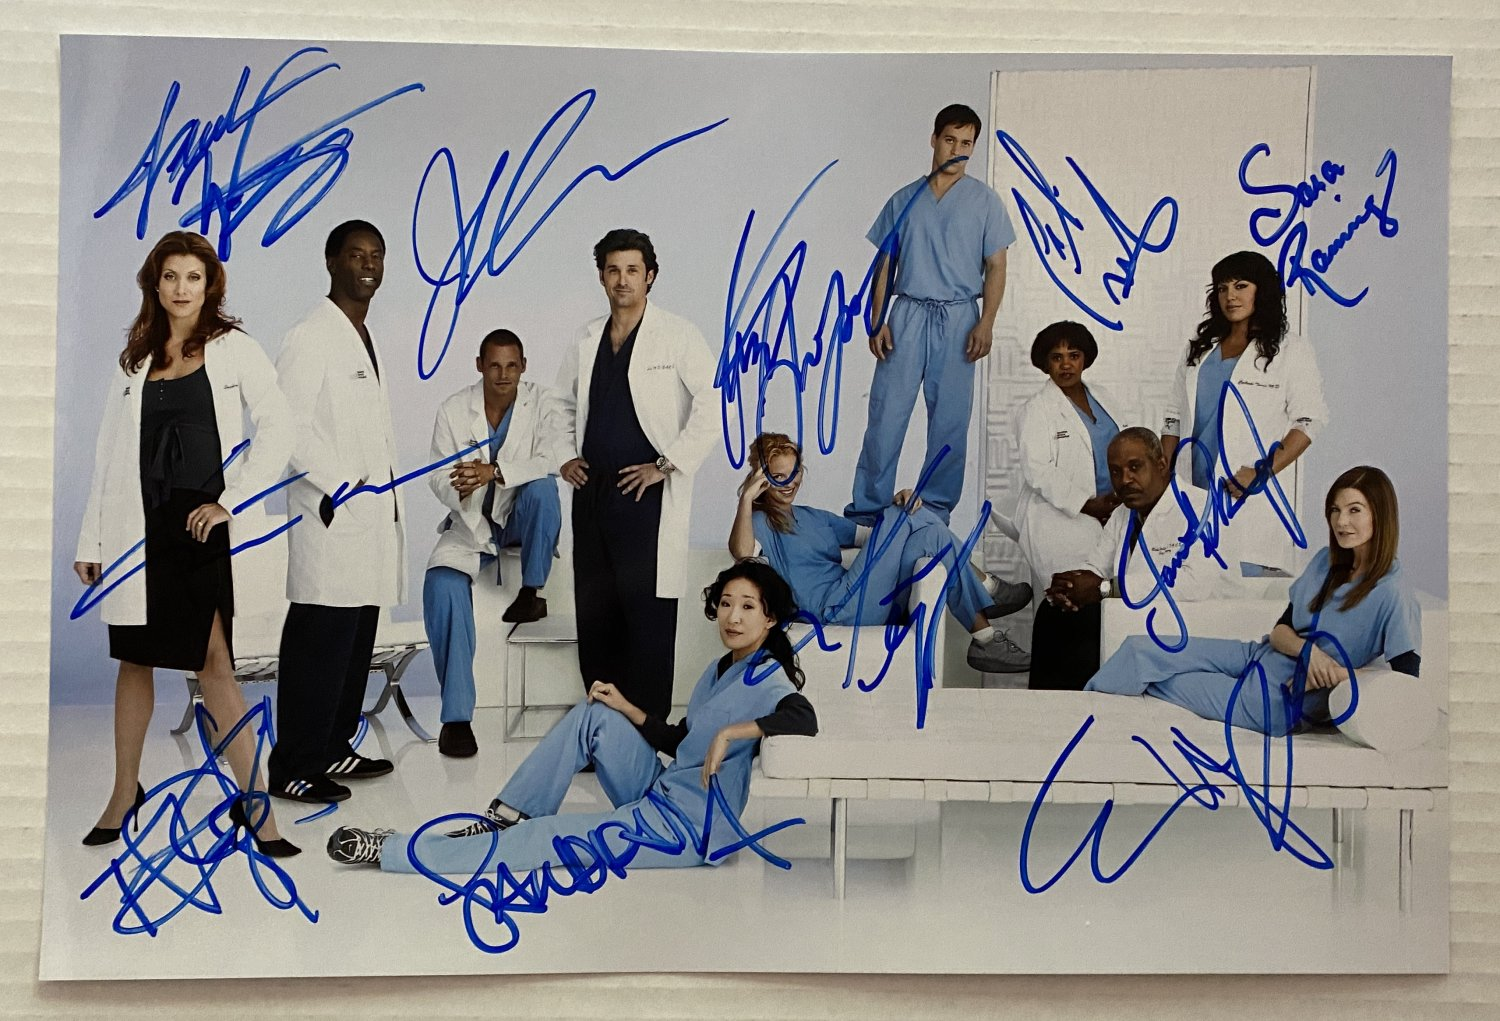 Grey's Anatomy cast signed autographed 8x12 photo Ellen Pompeo Justin Chambers